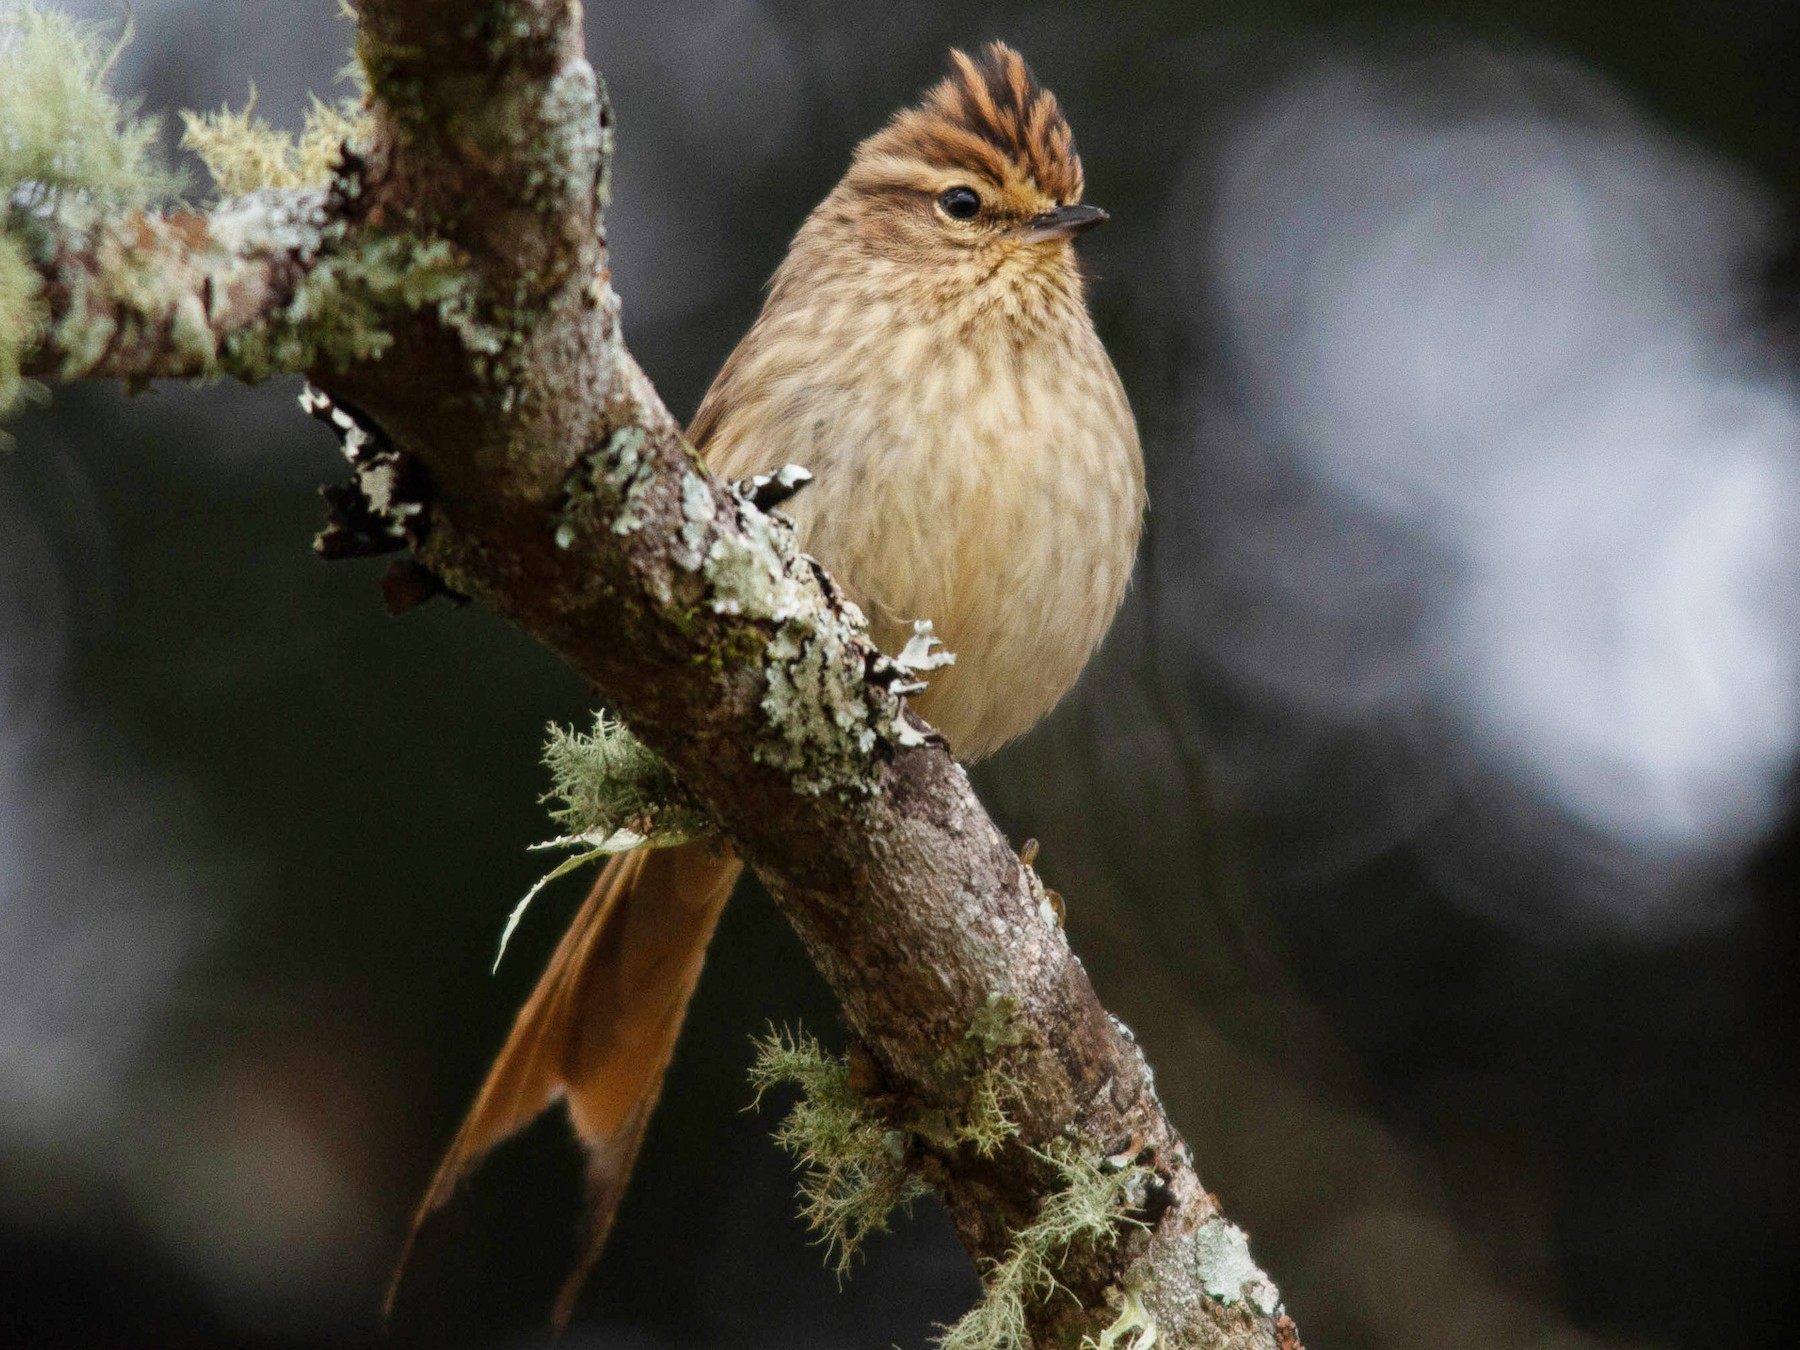 Striolated Tit-Spinetail - João Vitor Perin Andriola